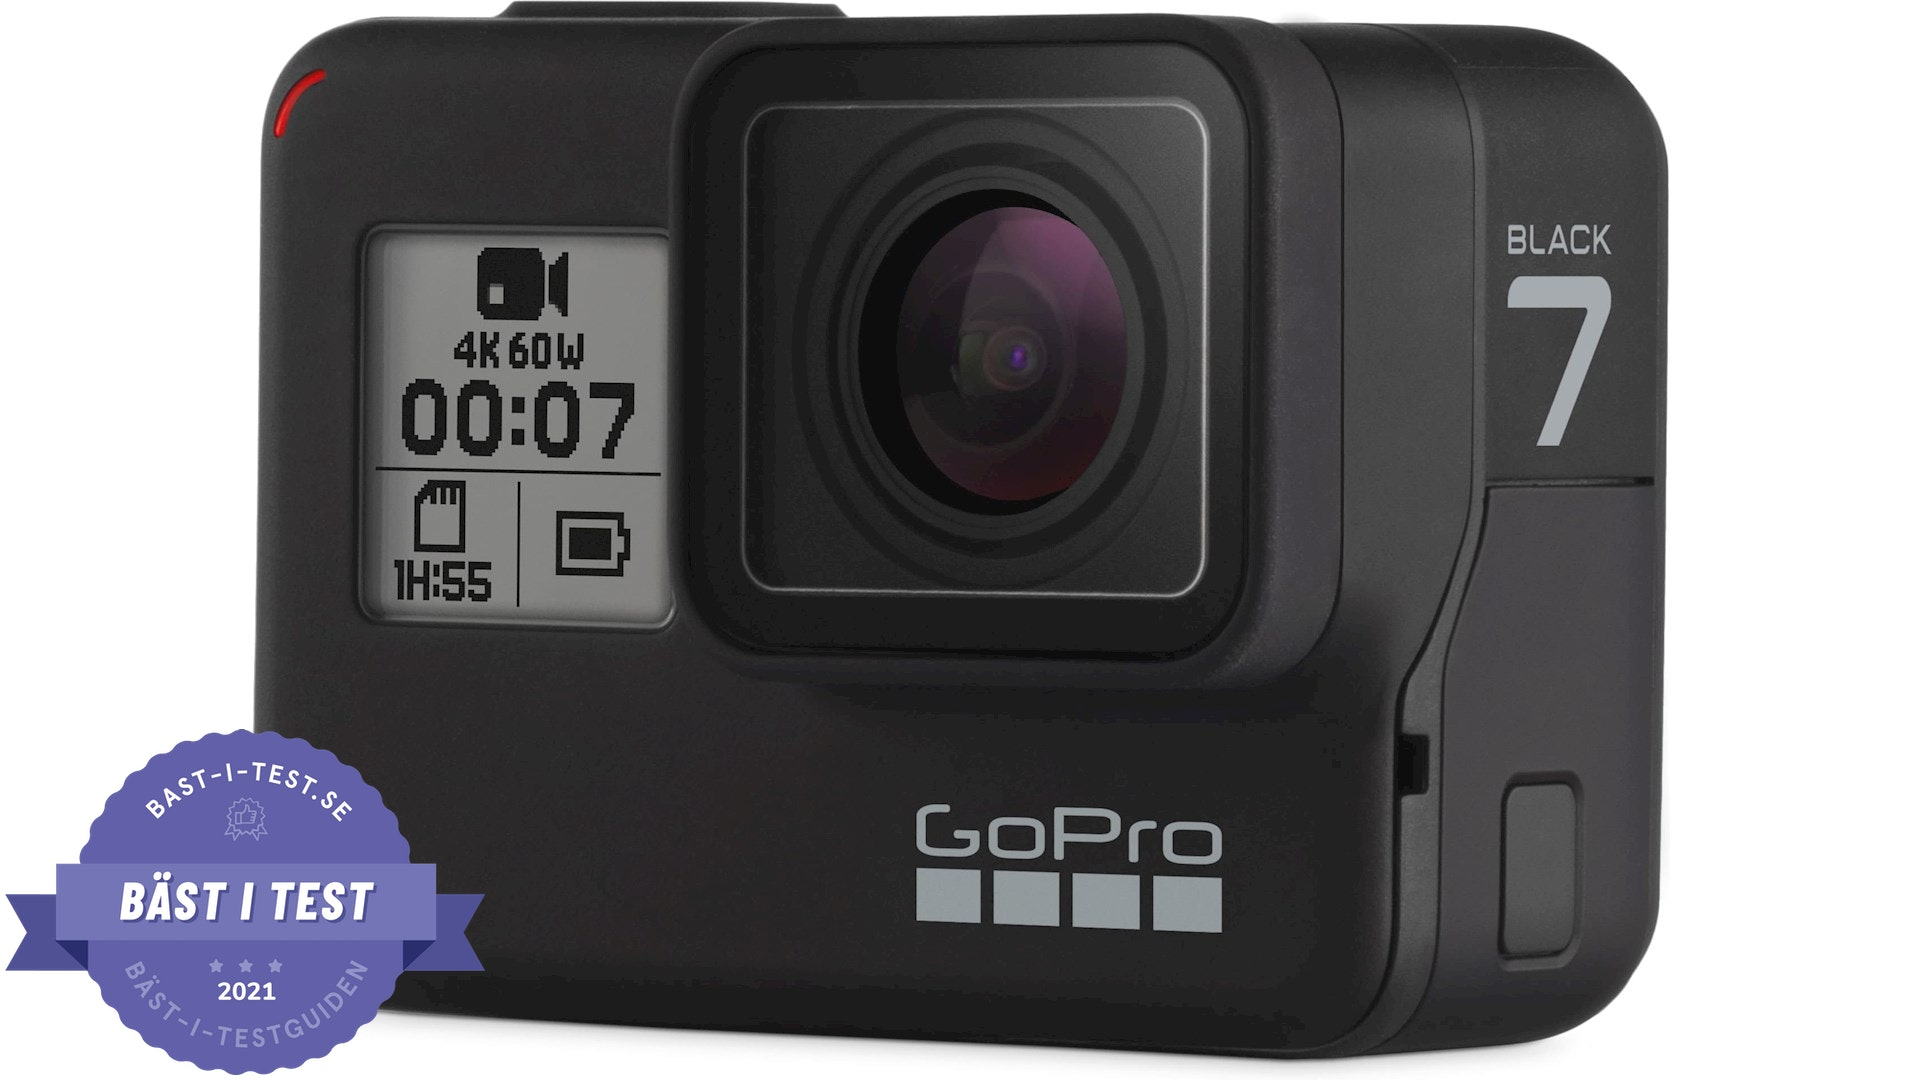 Bästa actionkameran 2020 - GoPro Hero7 Black